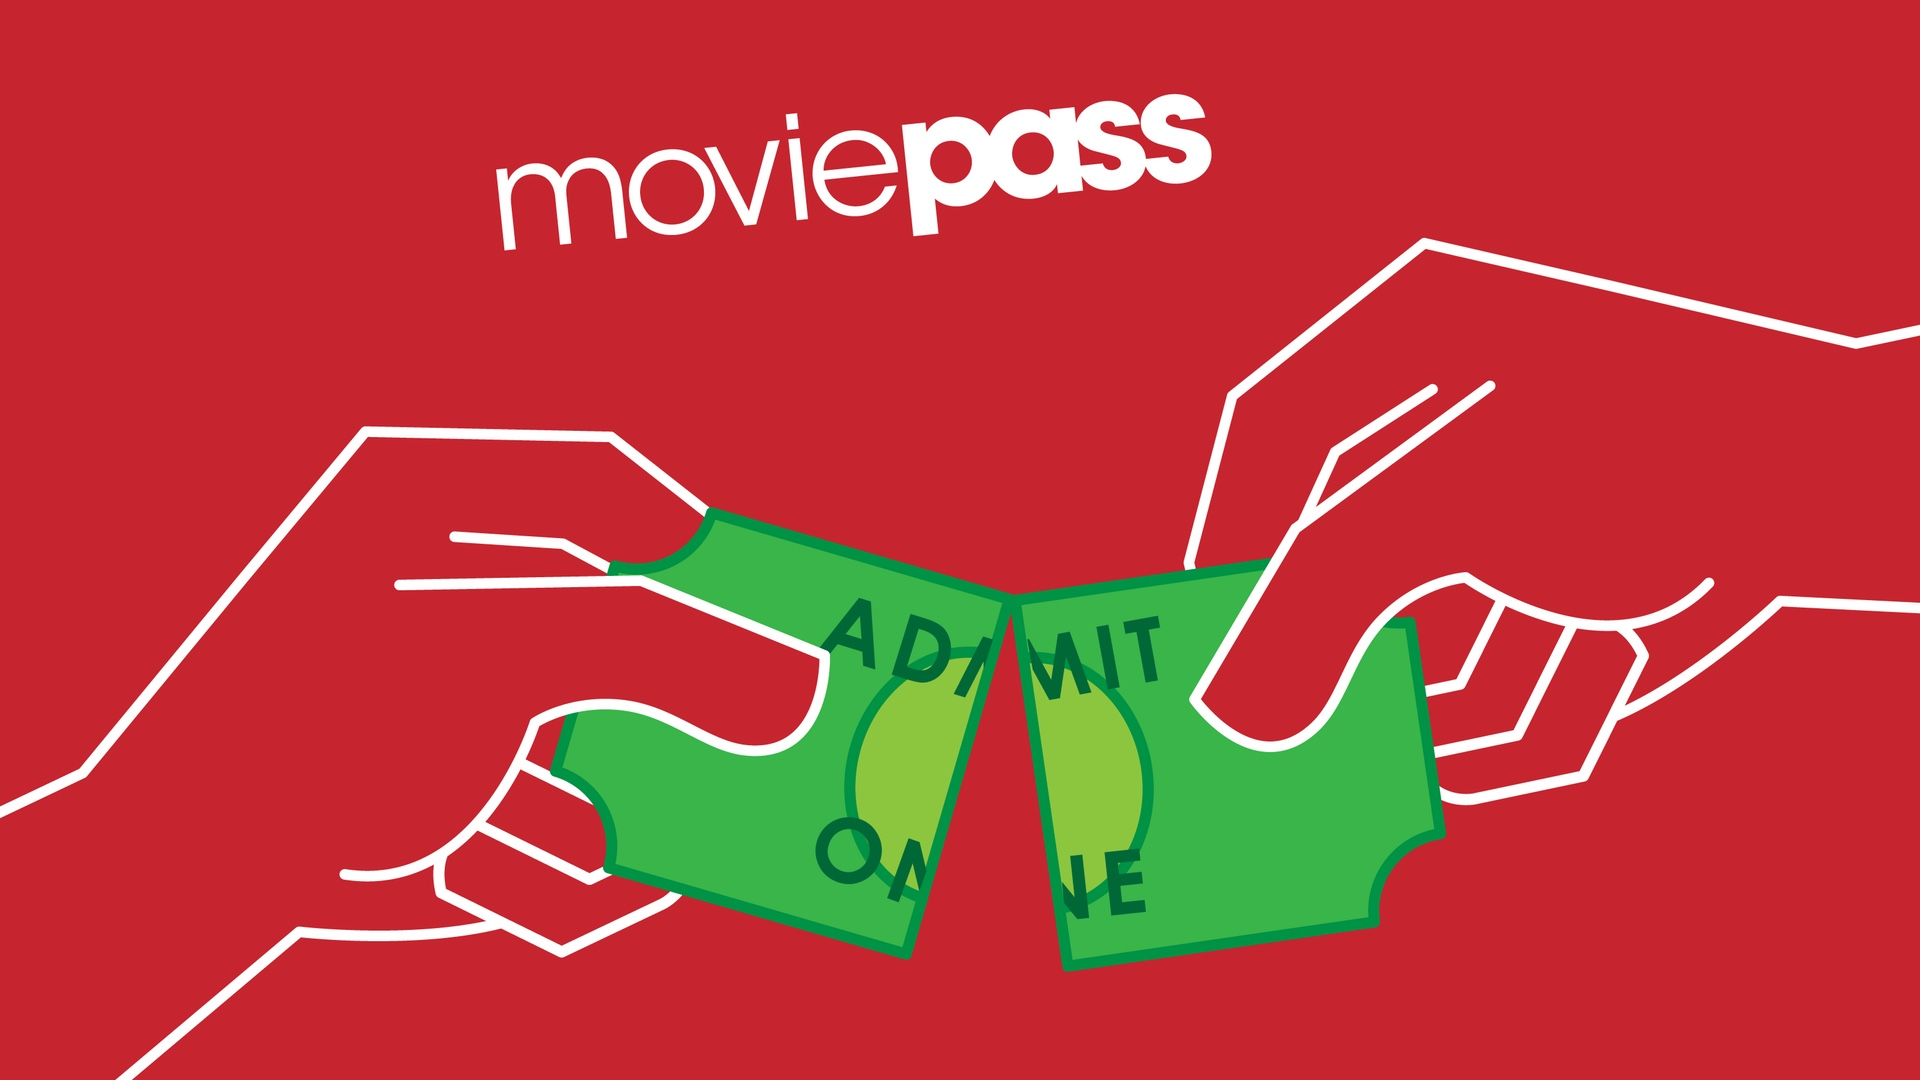 moviepass-brings-back-their-movie-a-day-monthly-plan-social.jpg